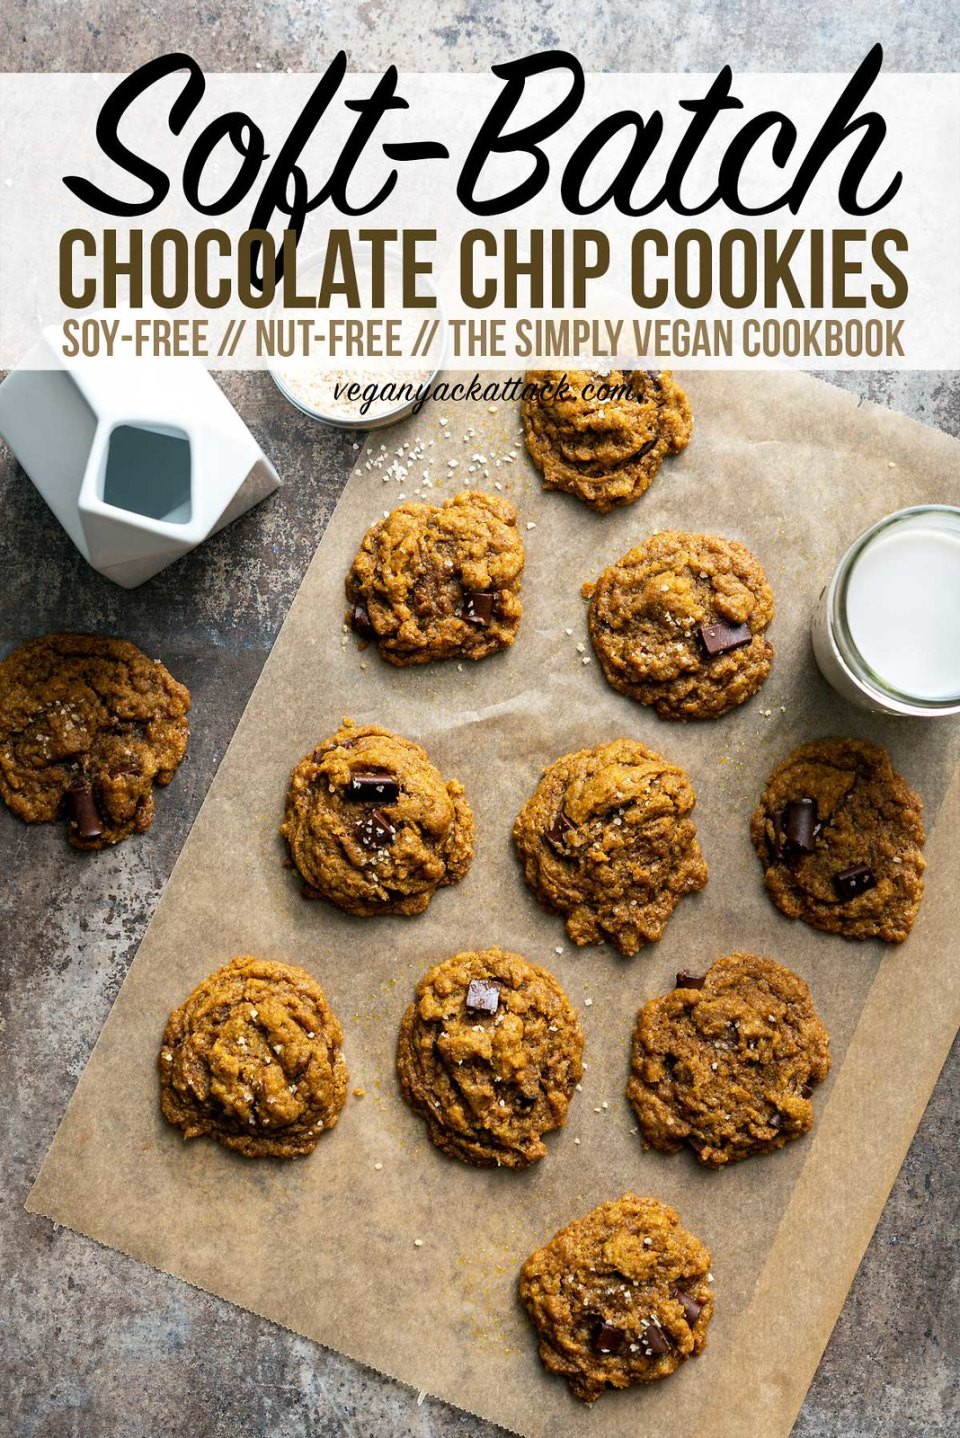 What better way to cheer up your family and friends than with fresh, vegan, Soft-Batch Chocolate Chip Cookies? Make sure to snag a few for yourself before handing them out! ;) #vegan #cookies